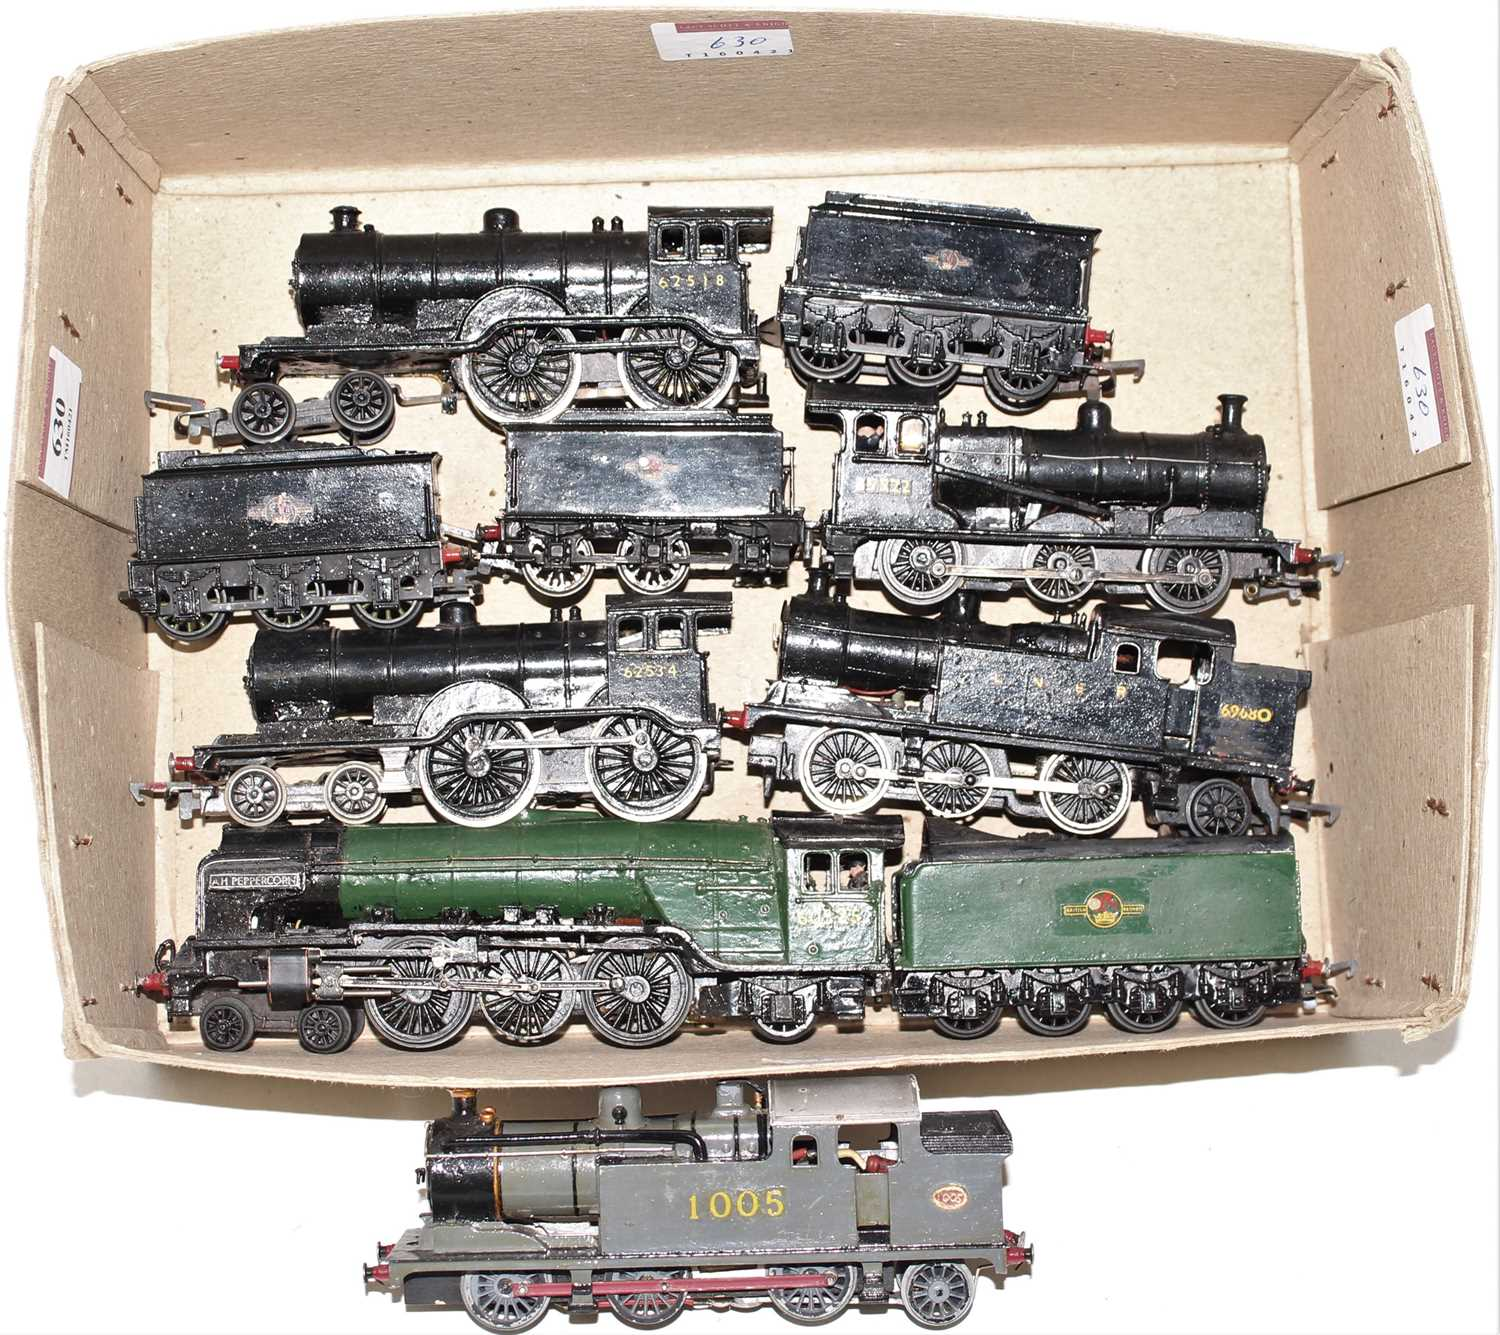 Six adapted or kit built locos, 62518/65522/69860/65234/60525 and 1005, all 2-rail, all very heavily